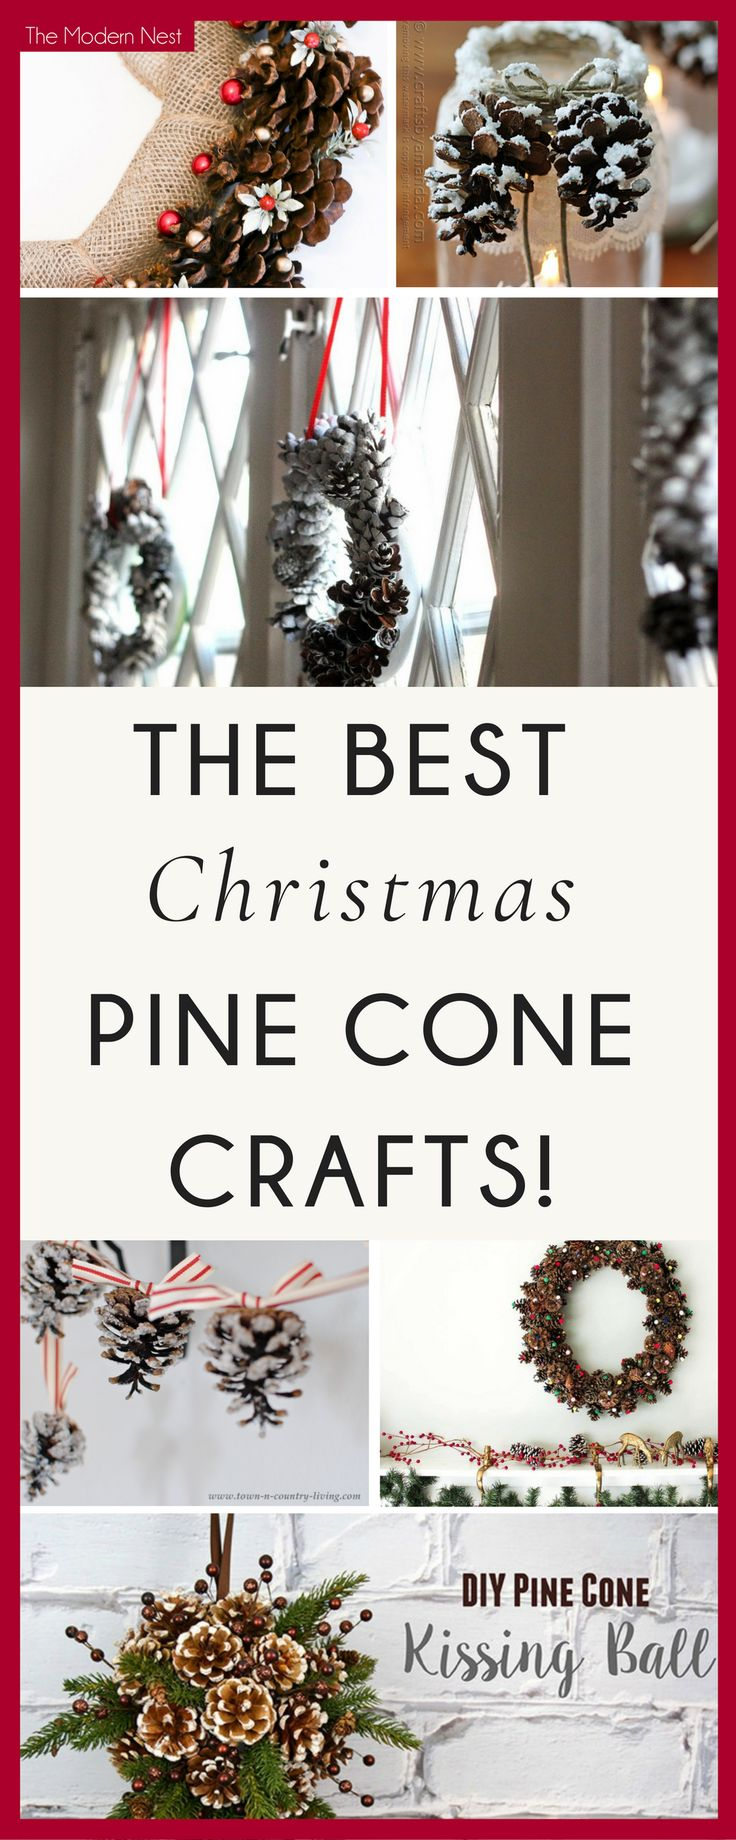 Looking for fun crafts to do for Christmas? Check out this collection of over 25 of the best Christmas pine cone crafts for inspiration! You can see all the Christmas craft ideas at https://www.themodernnestblog.com/archives/2174 #ChristmasDecor #christmascrafts #christmastime #christmasdiy #pinecones